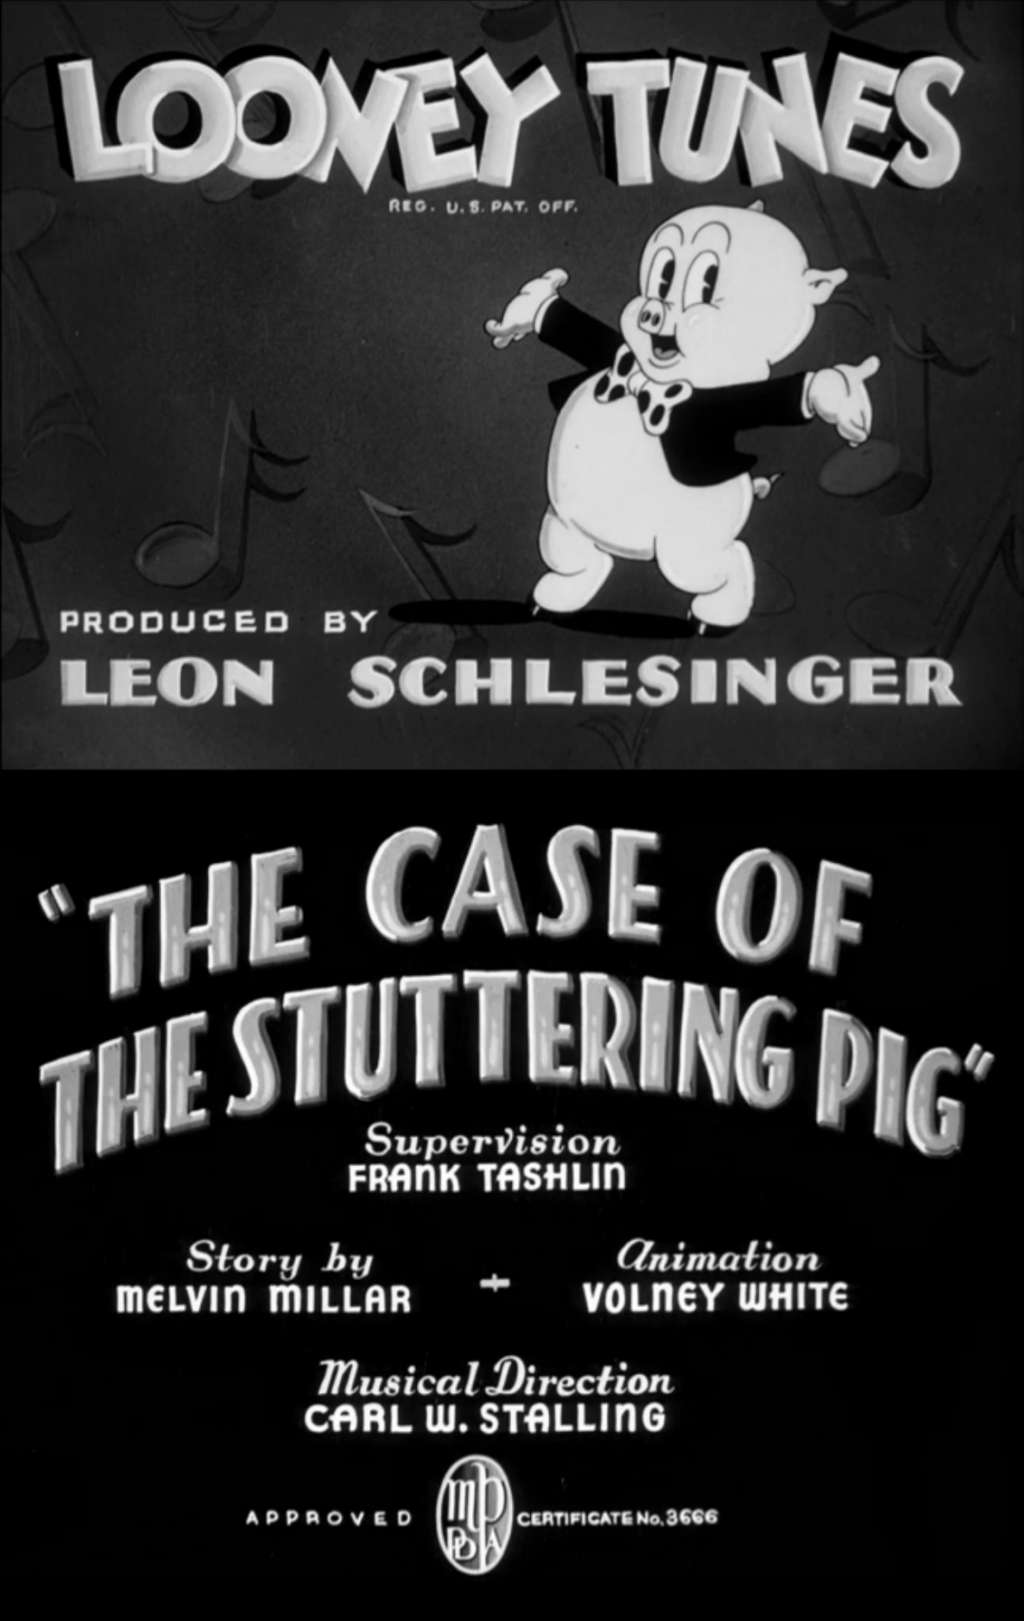 The Case of the Stuttering Pig kapak